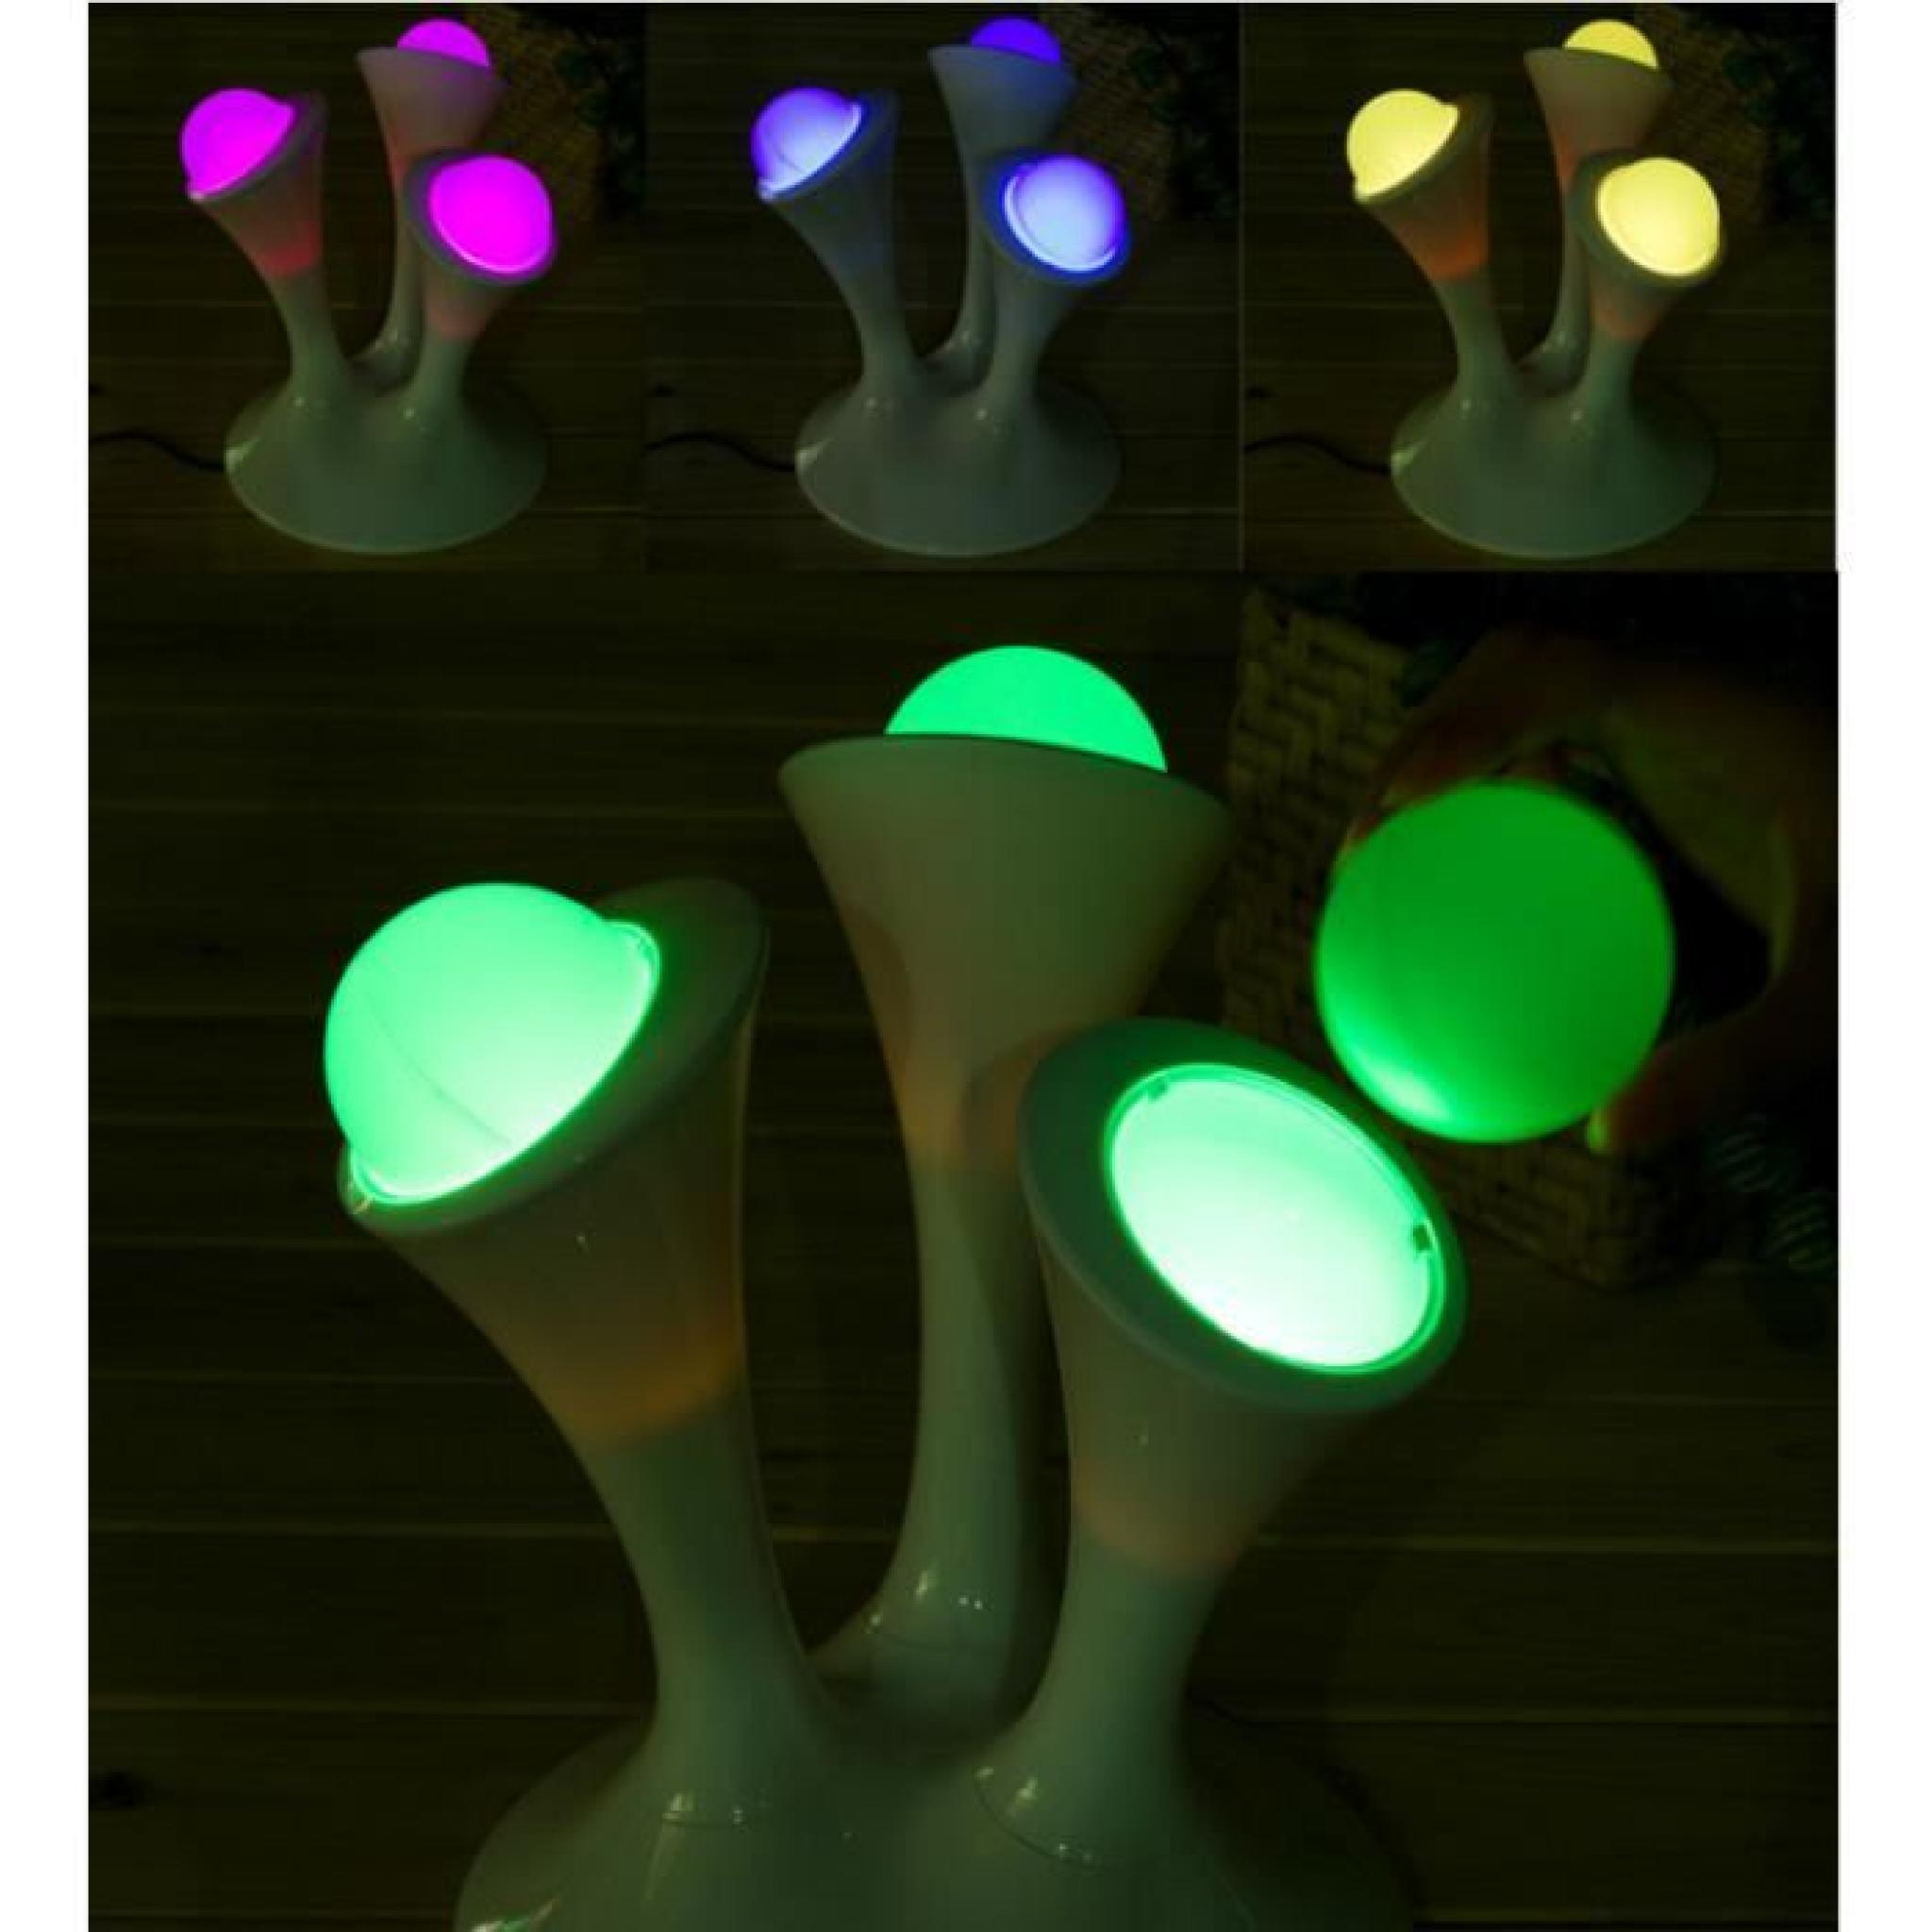 Nuit Allaitement Magique Colorful De Night Avatar Led Champignon Lumière Variables Lampe Light 9IWD2EH